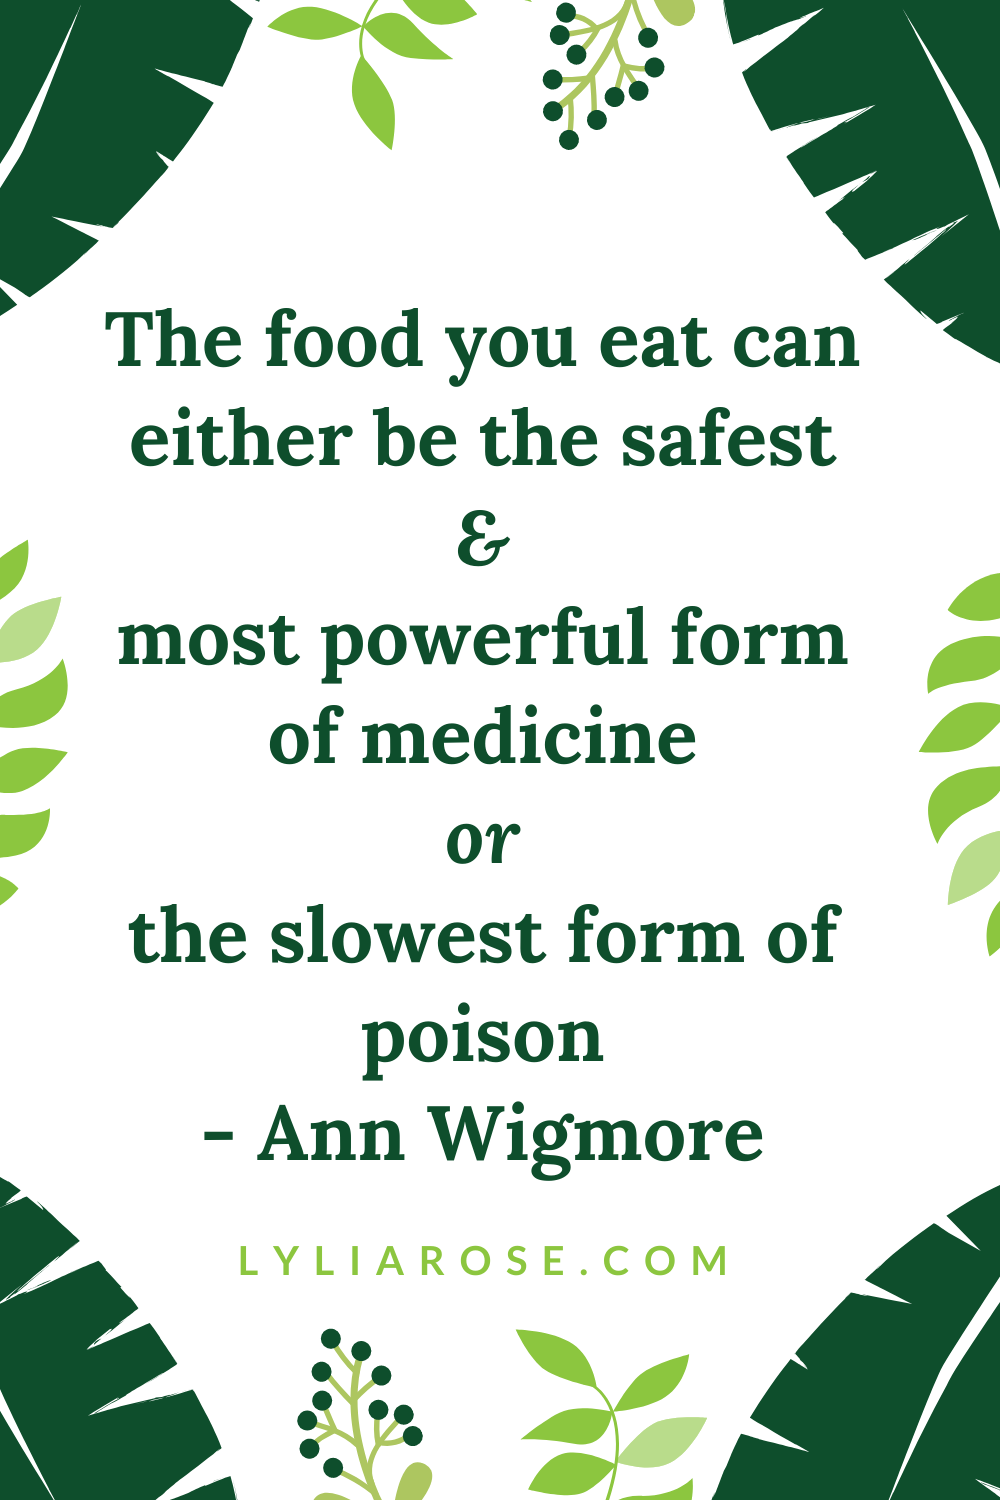 The food you eat can either be the safest & most powerful form of medicine